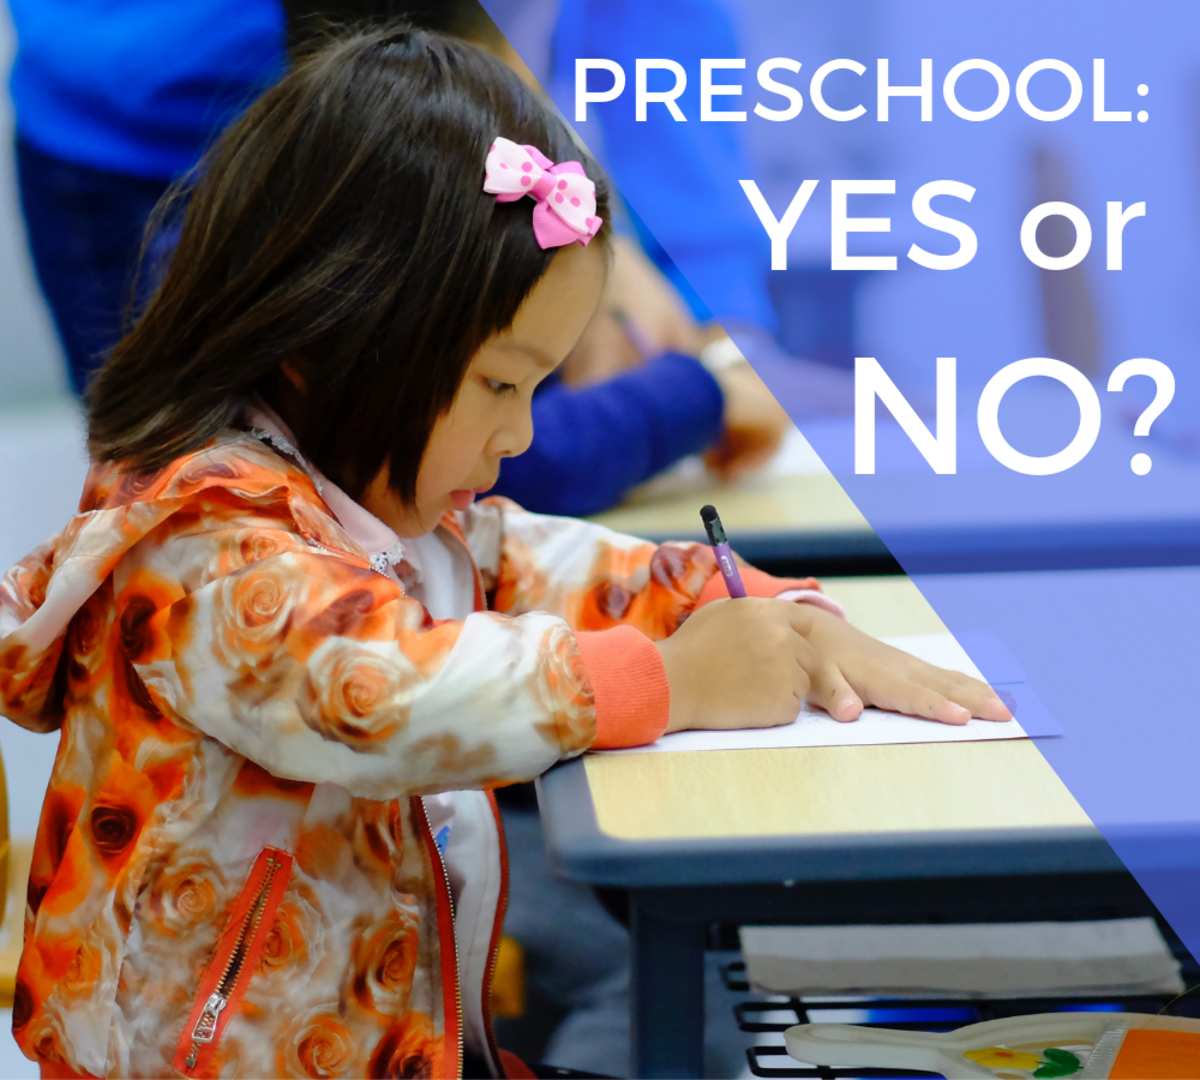 Why You Shouldn't Send Your Child to Preschool: A Teacher Explains